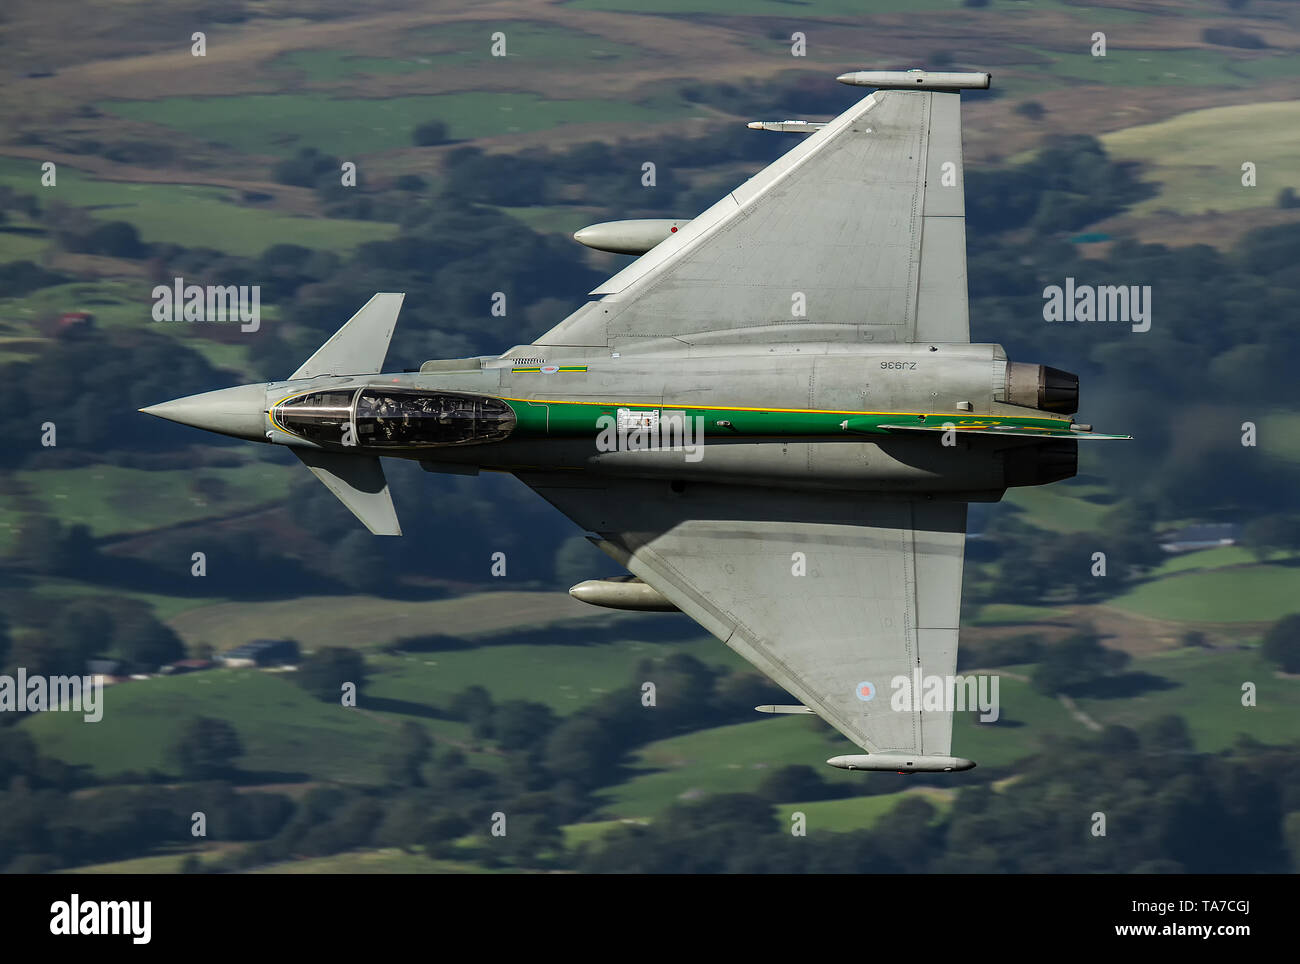 RAF Eurofighter Typhoon flying low level through the Mach Loop In Wales, UK Stock Photo